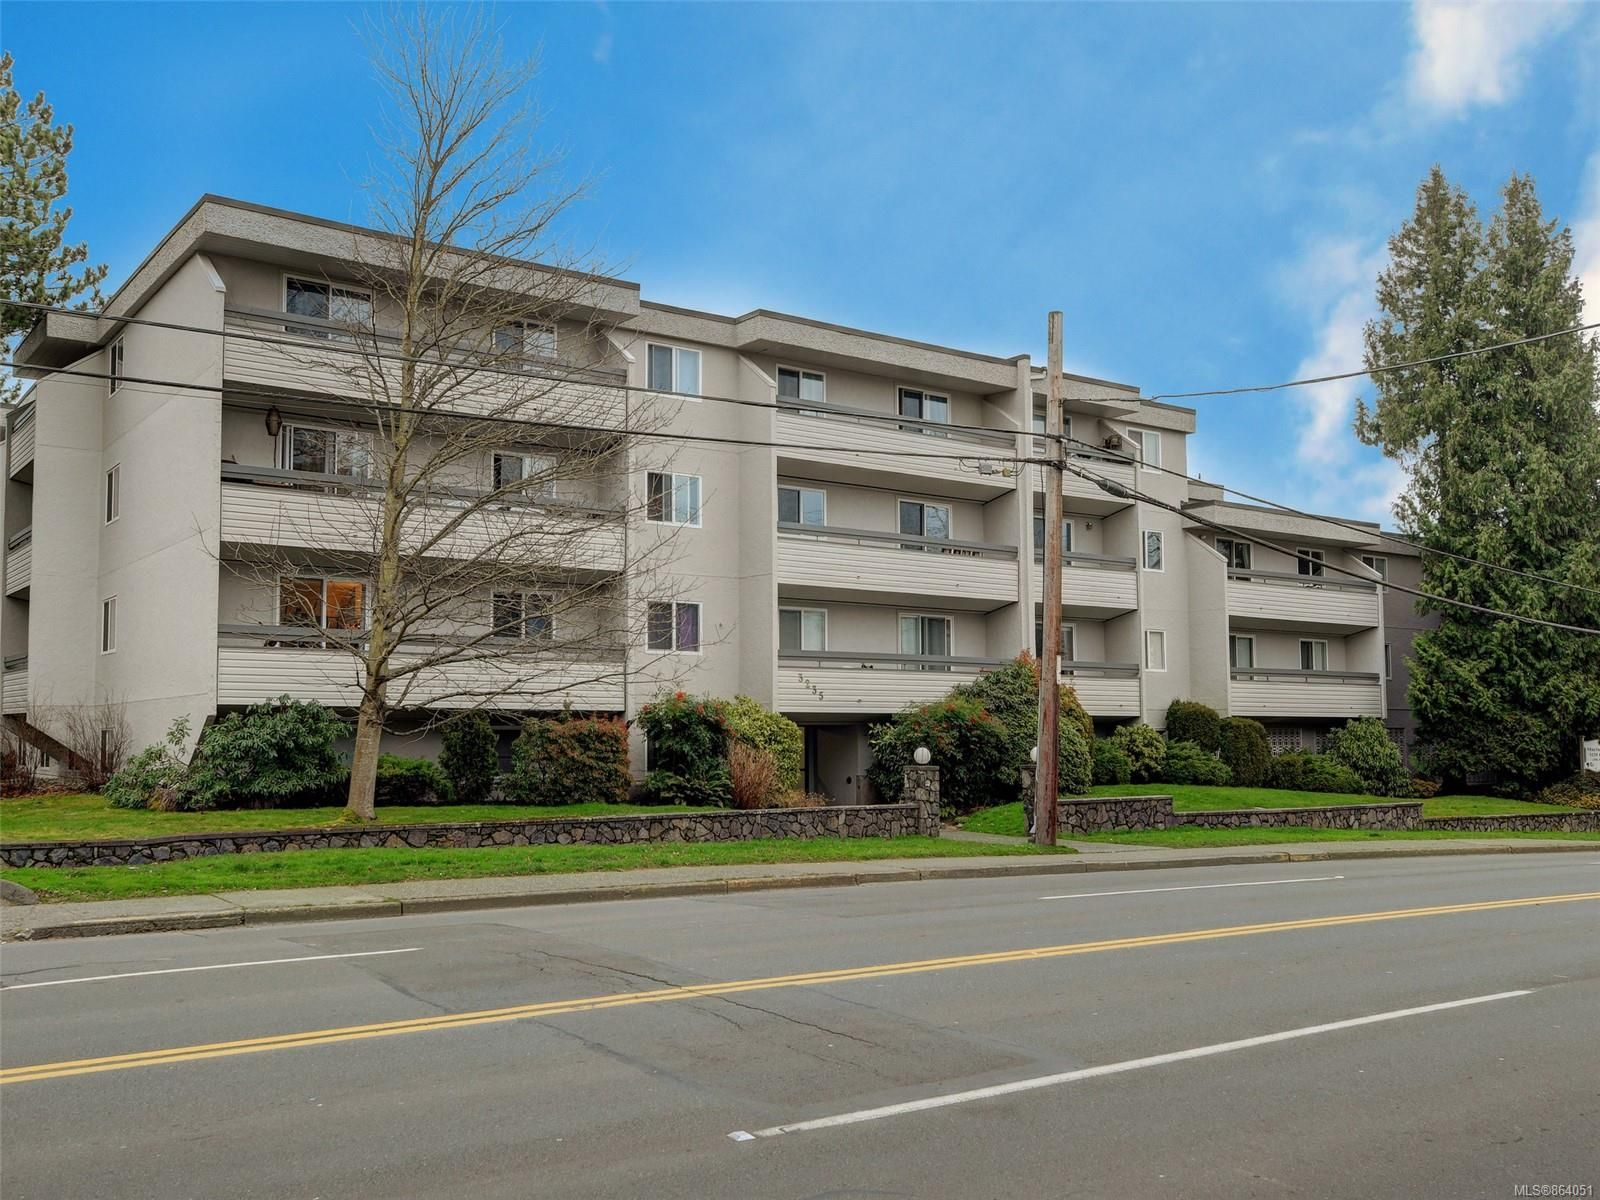 Main Photo: 312 3235 Quadra St in : SE Maplewood Condo for sale (Saanich East)  : MLS®# 864051